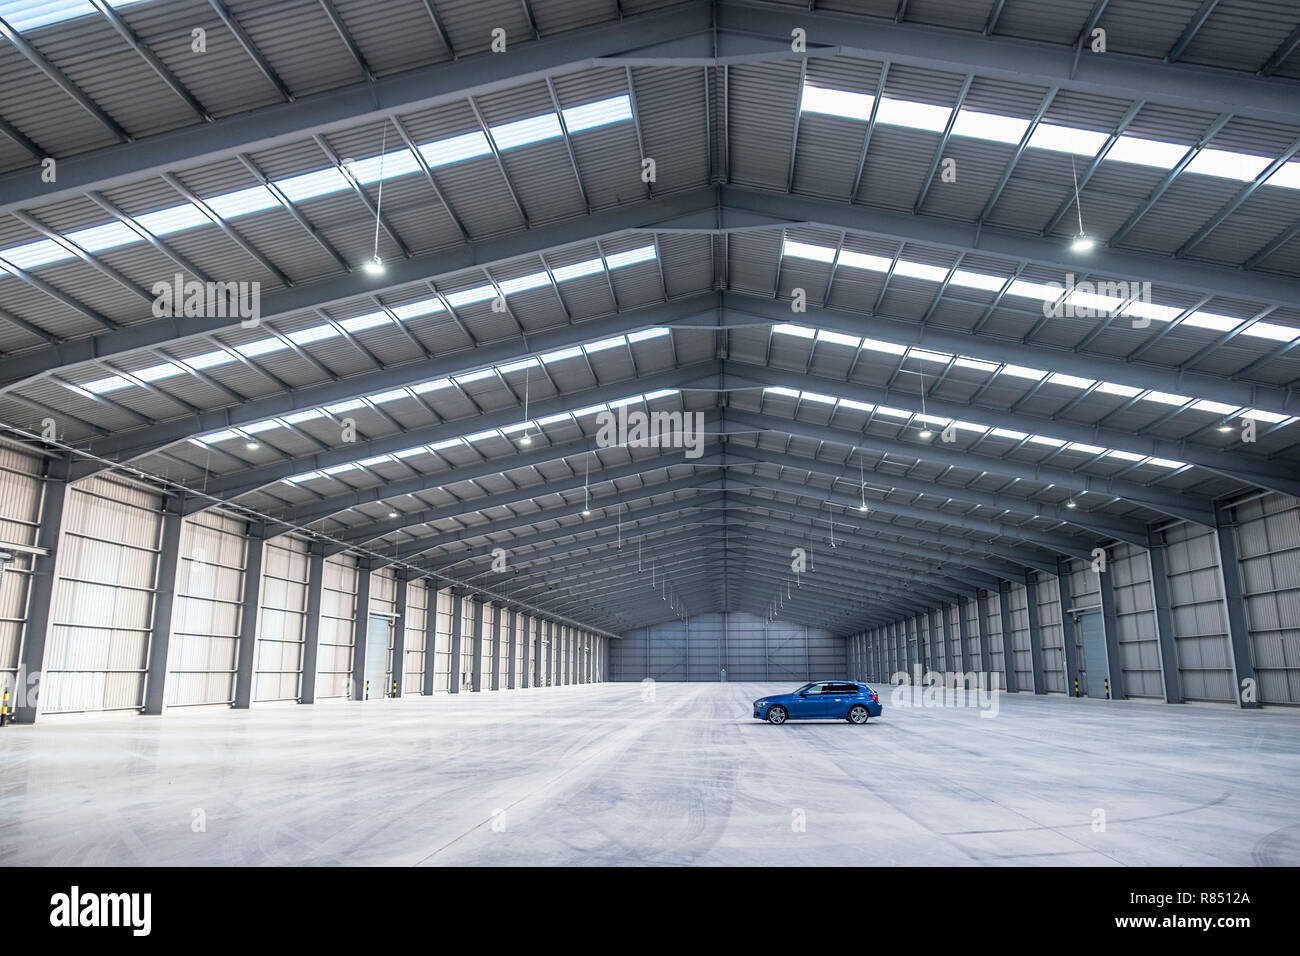 enormous empty warehouse space - Stock Image